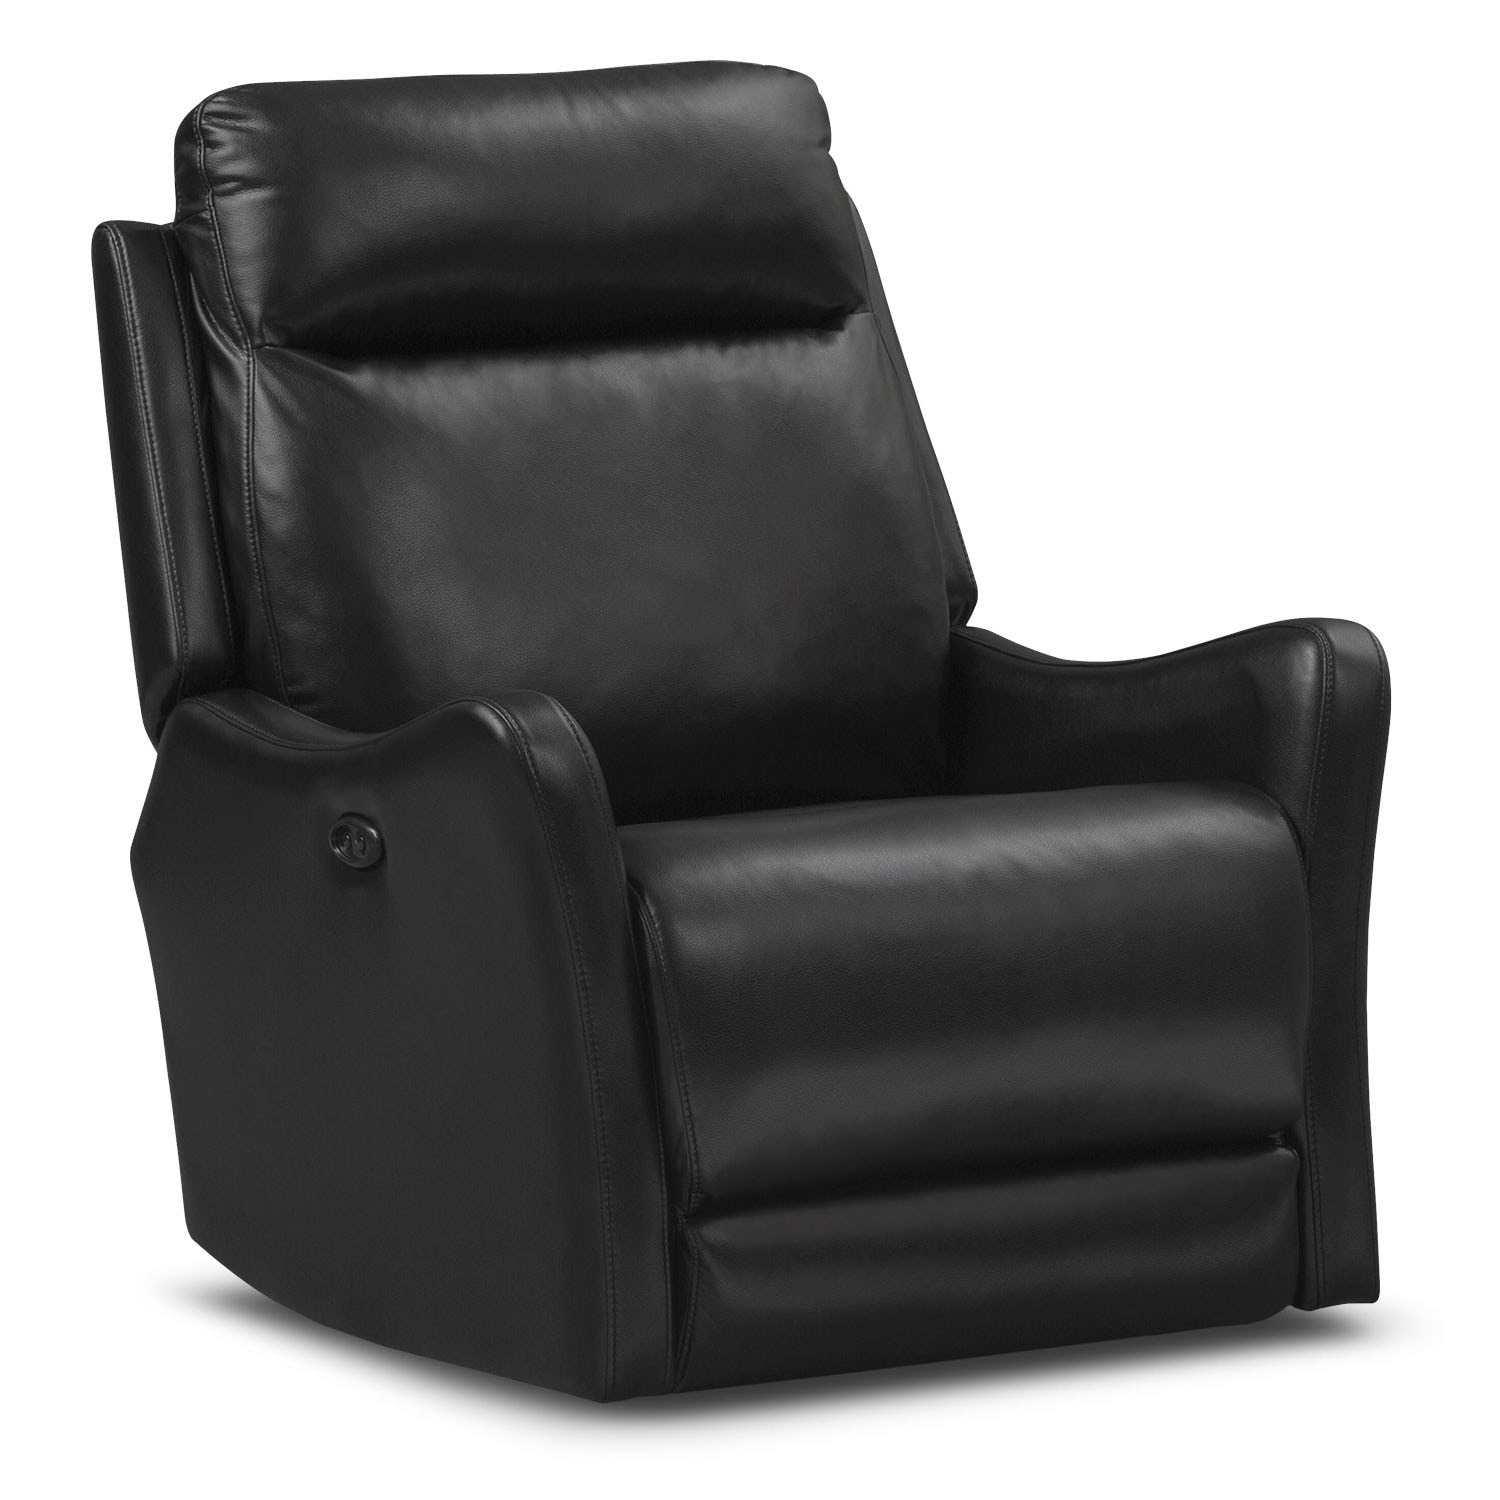 Enzo Power Recliner - Black